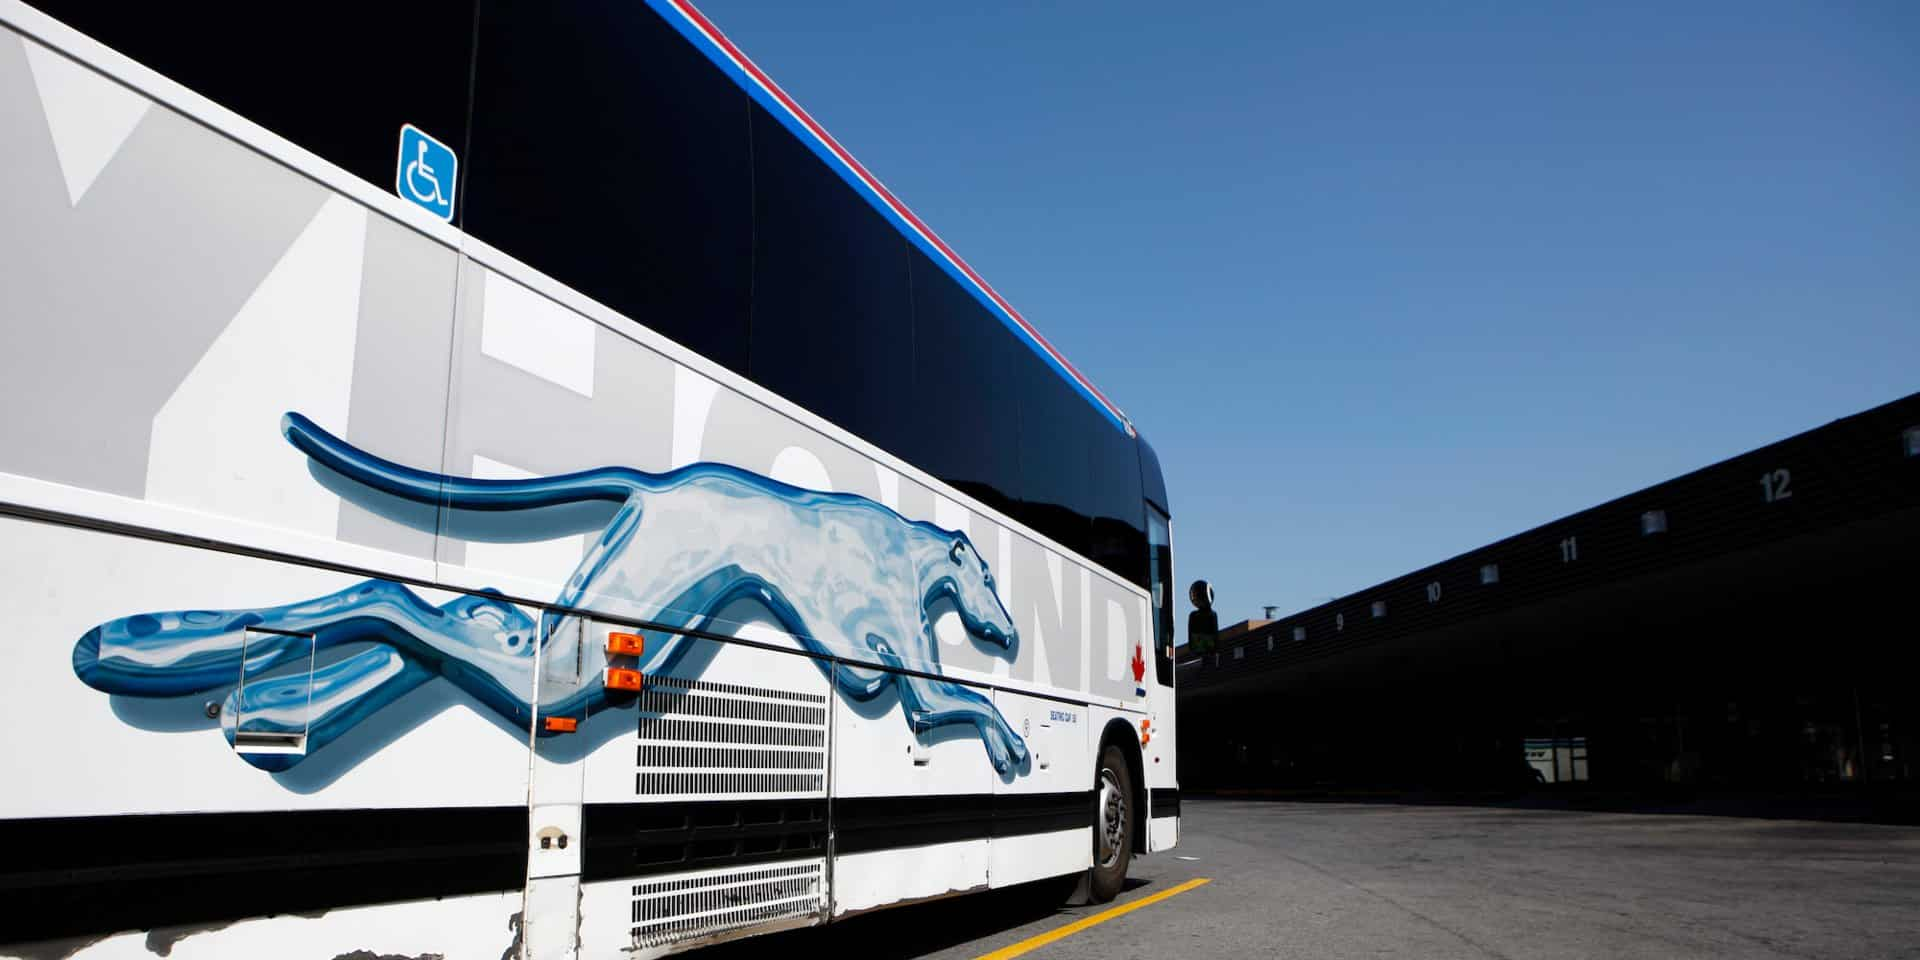 Iconic Greyhounds Buses to be Sold by First Group in the US